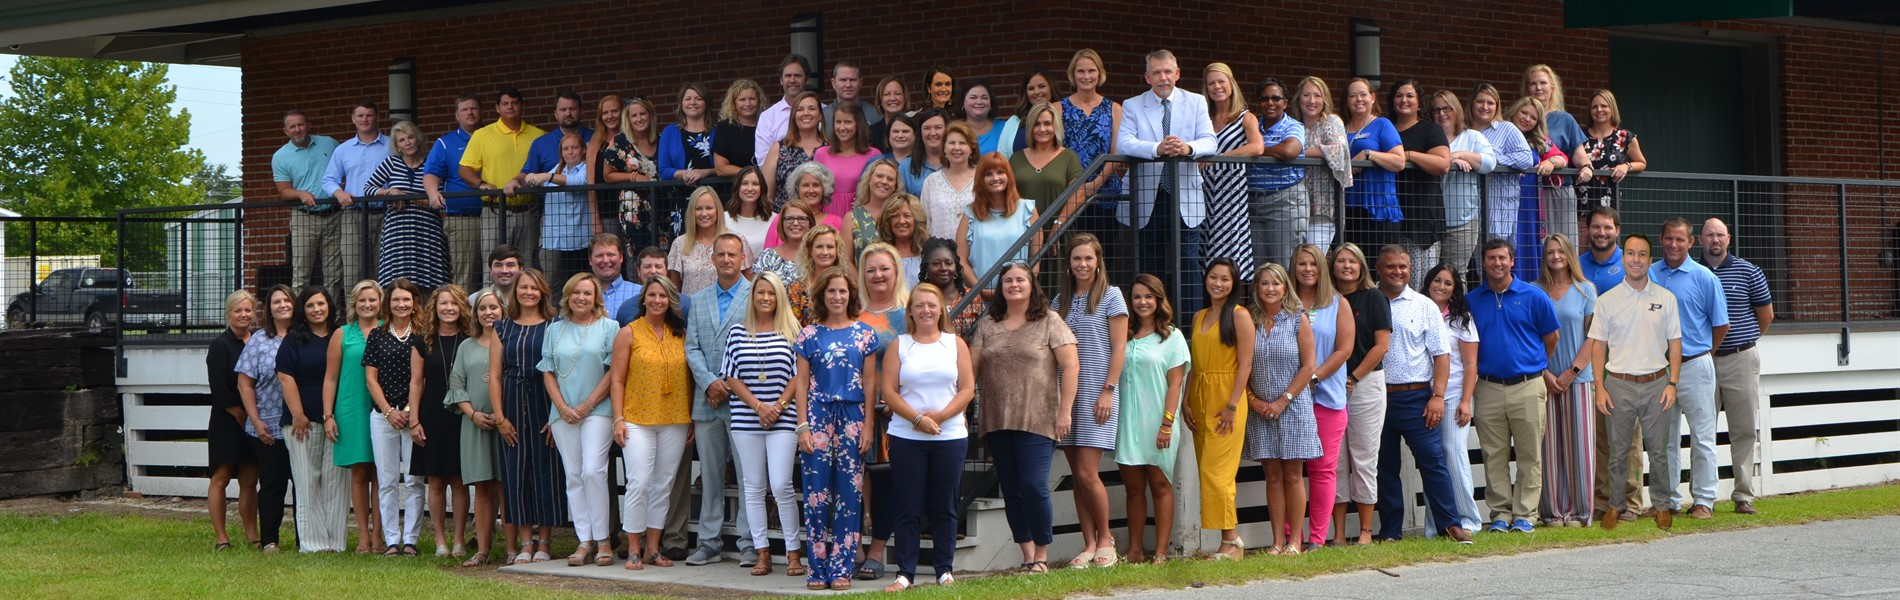 PCMS Faculty 2019-2020